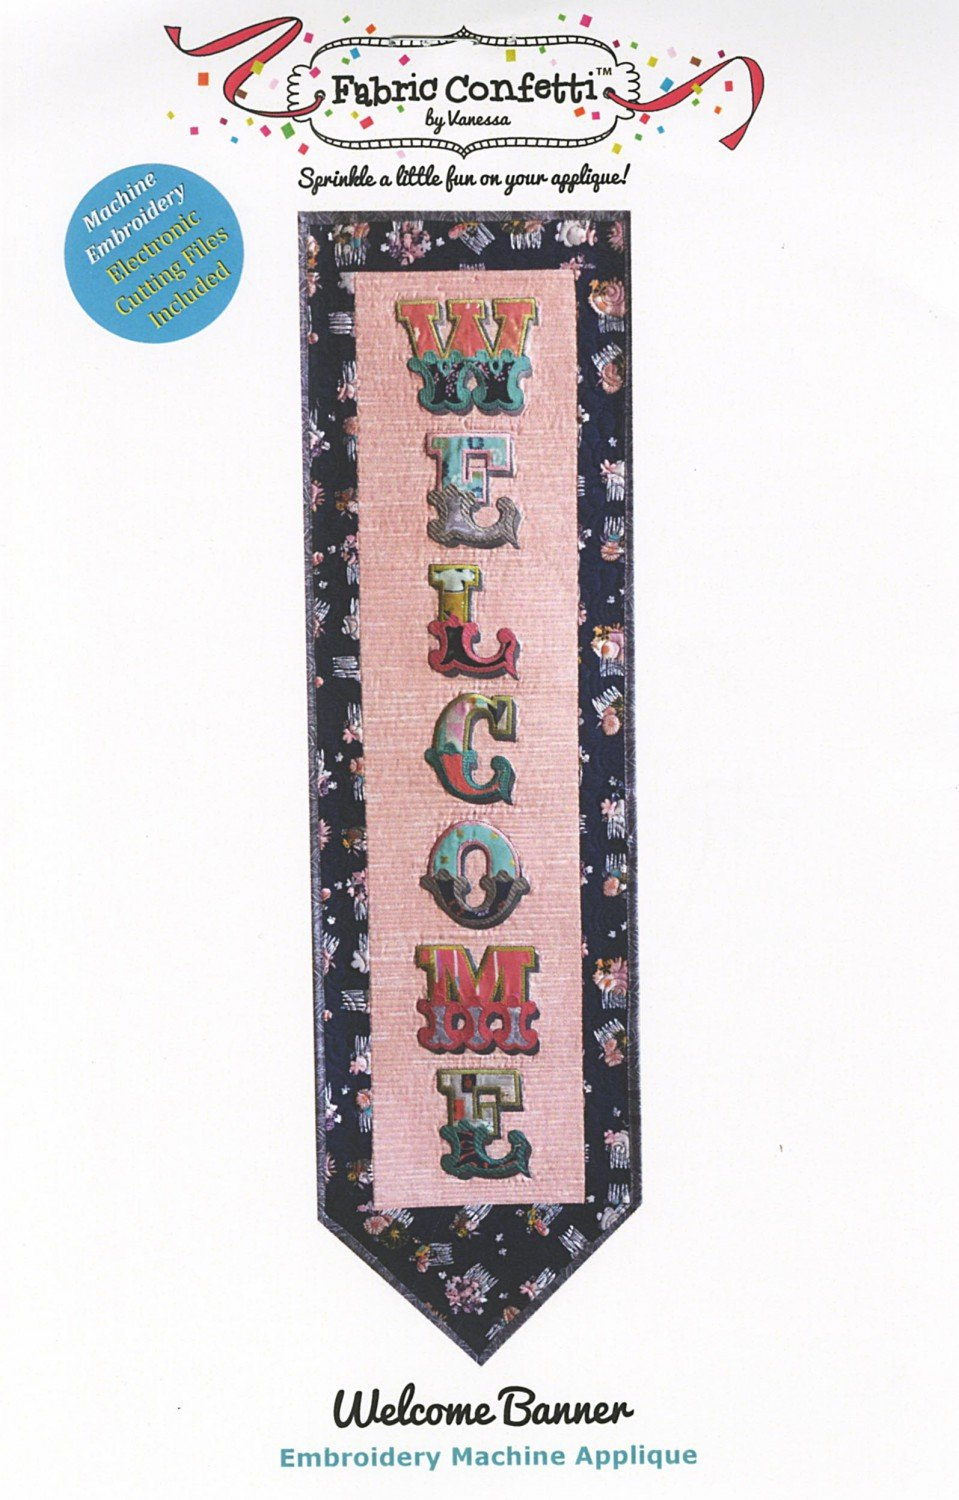 Welcmome Banner - Embroidery Applique on CD